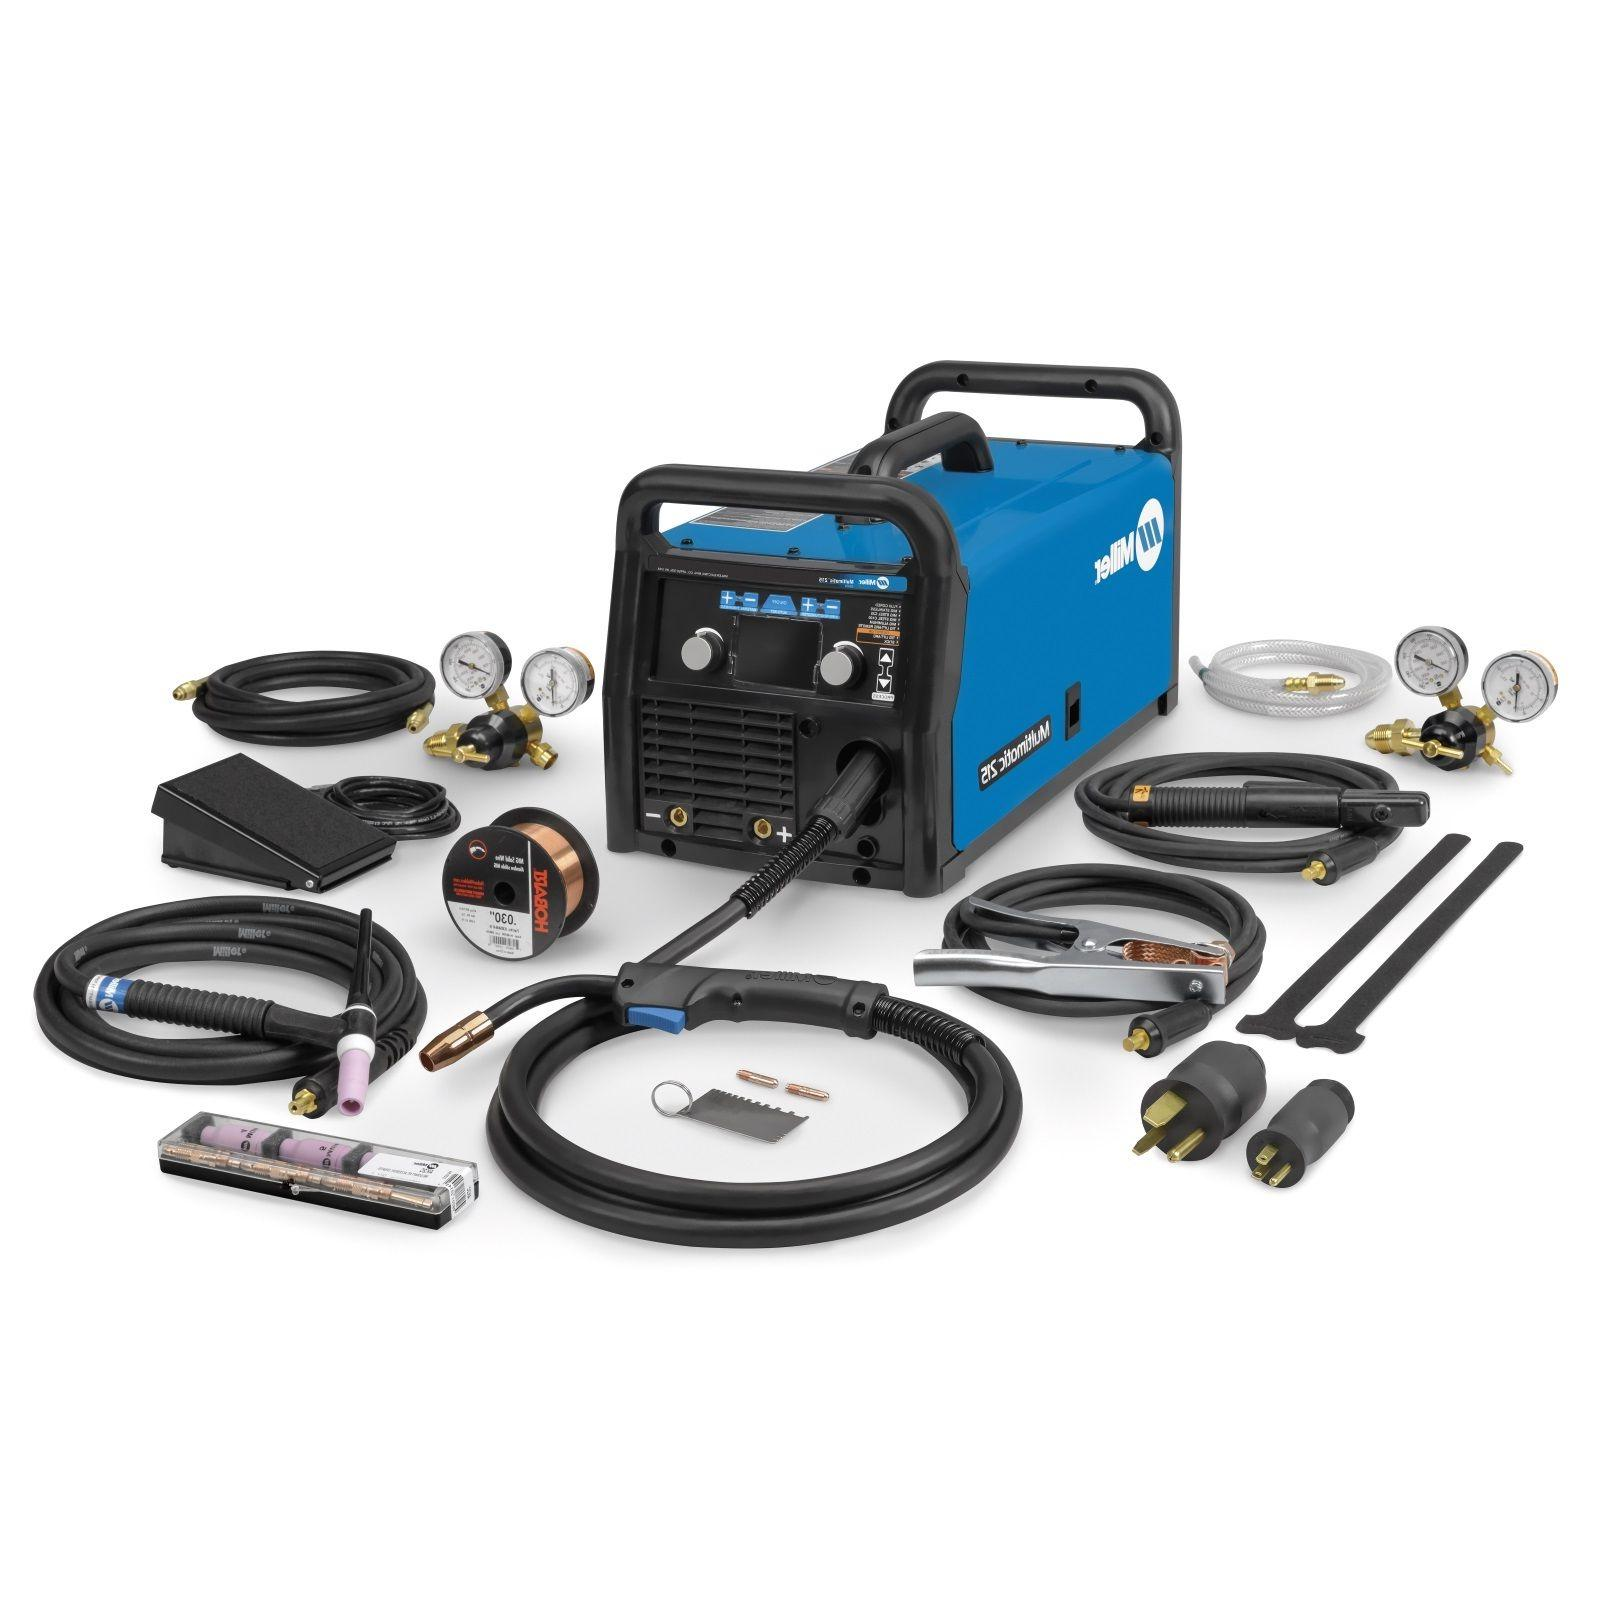 Miller Multimatic 215 Multiprocess Welder with Package